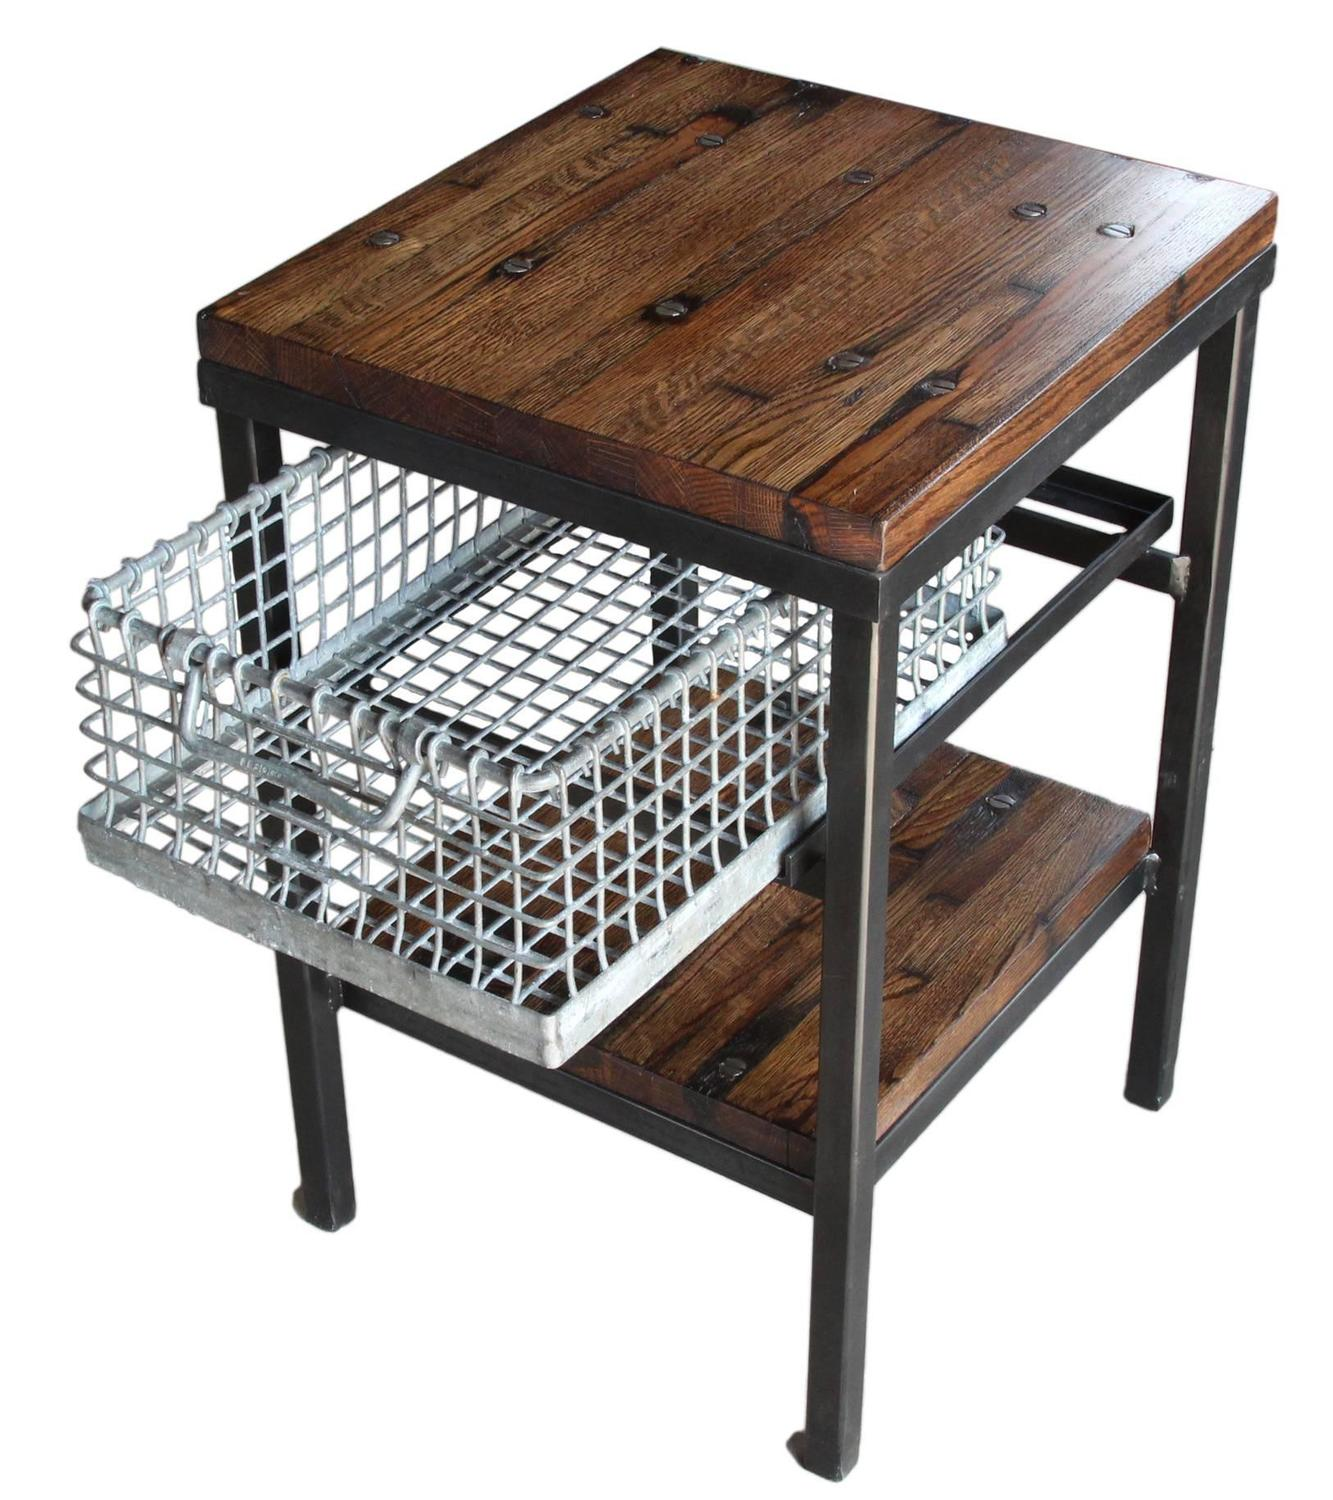 galvanized storage basket nightstand end table with shelf antique zoey night accent baskets walnut elastic tablecloth target project tesco coffee sets black and brown tables doors